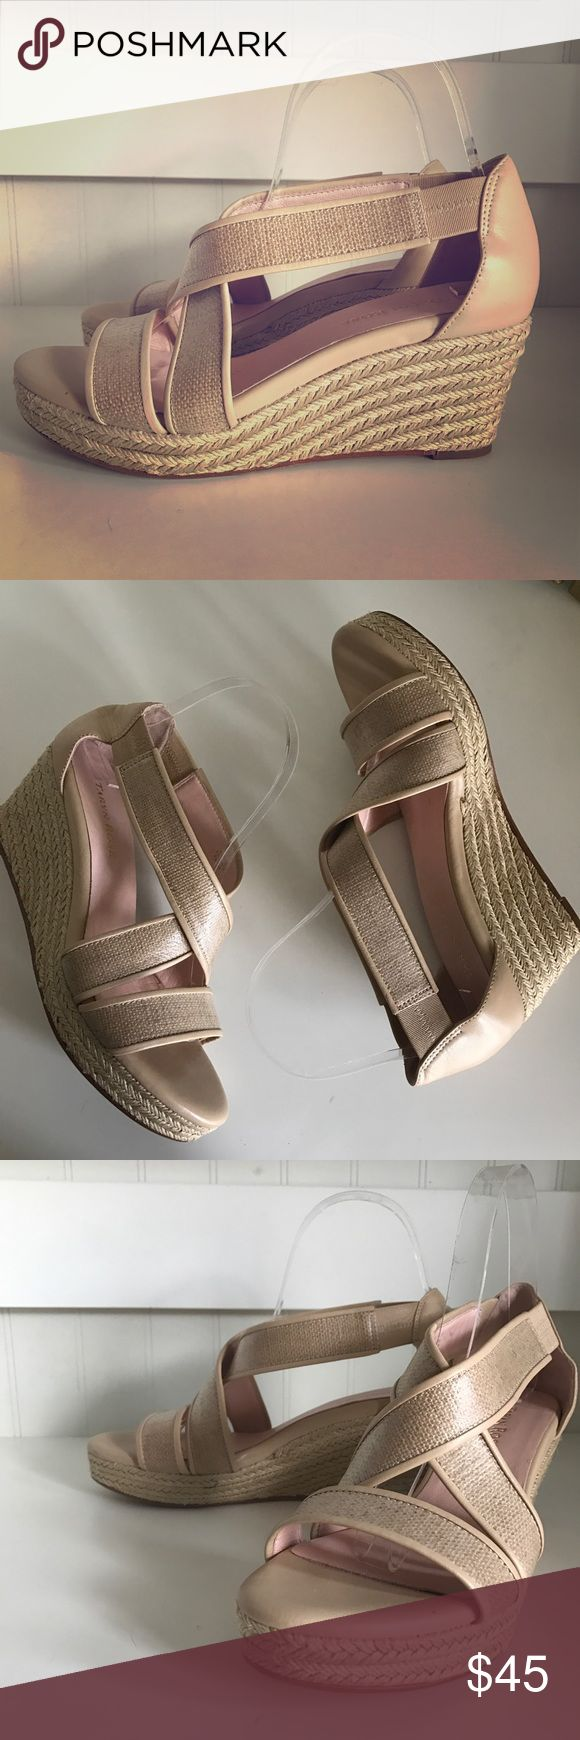 """Taryn Rose nude platform wedge sandals Amazing Taryn Rose jute platform wedges. 2.5"""" heel with .5"""" platform. Leather. Only worn once! These are 1/2 size too big for me :( Taryn Rose Shoes Wedges"""